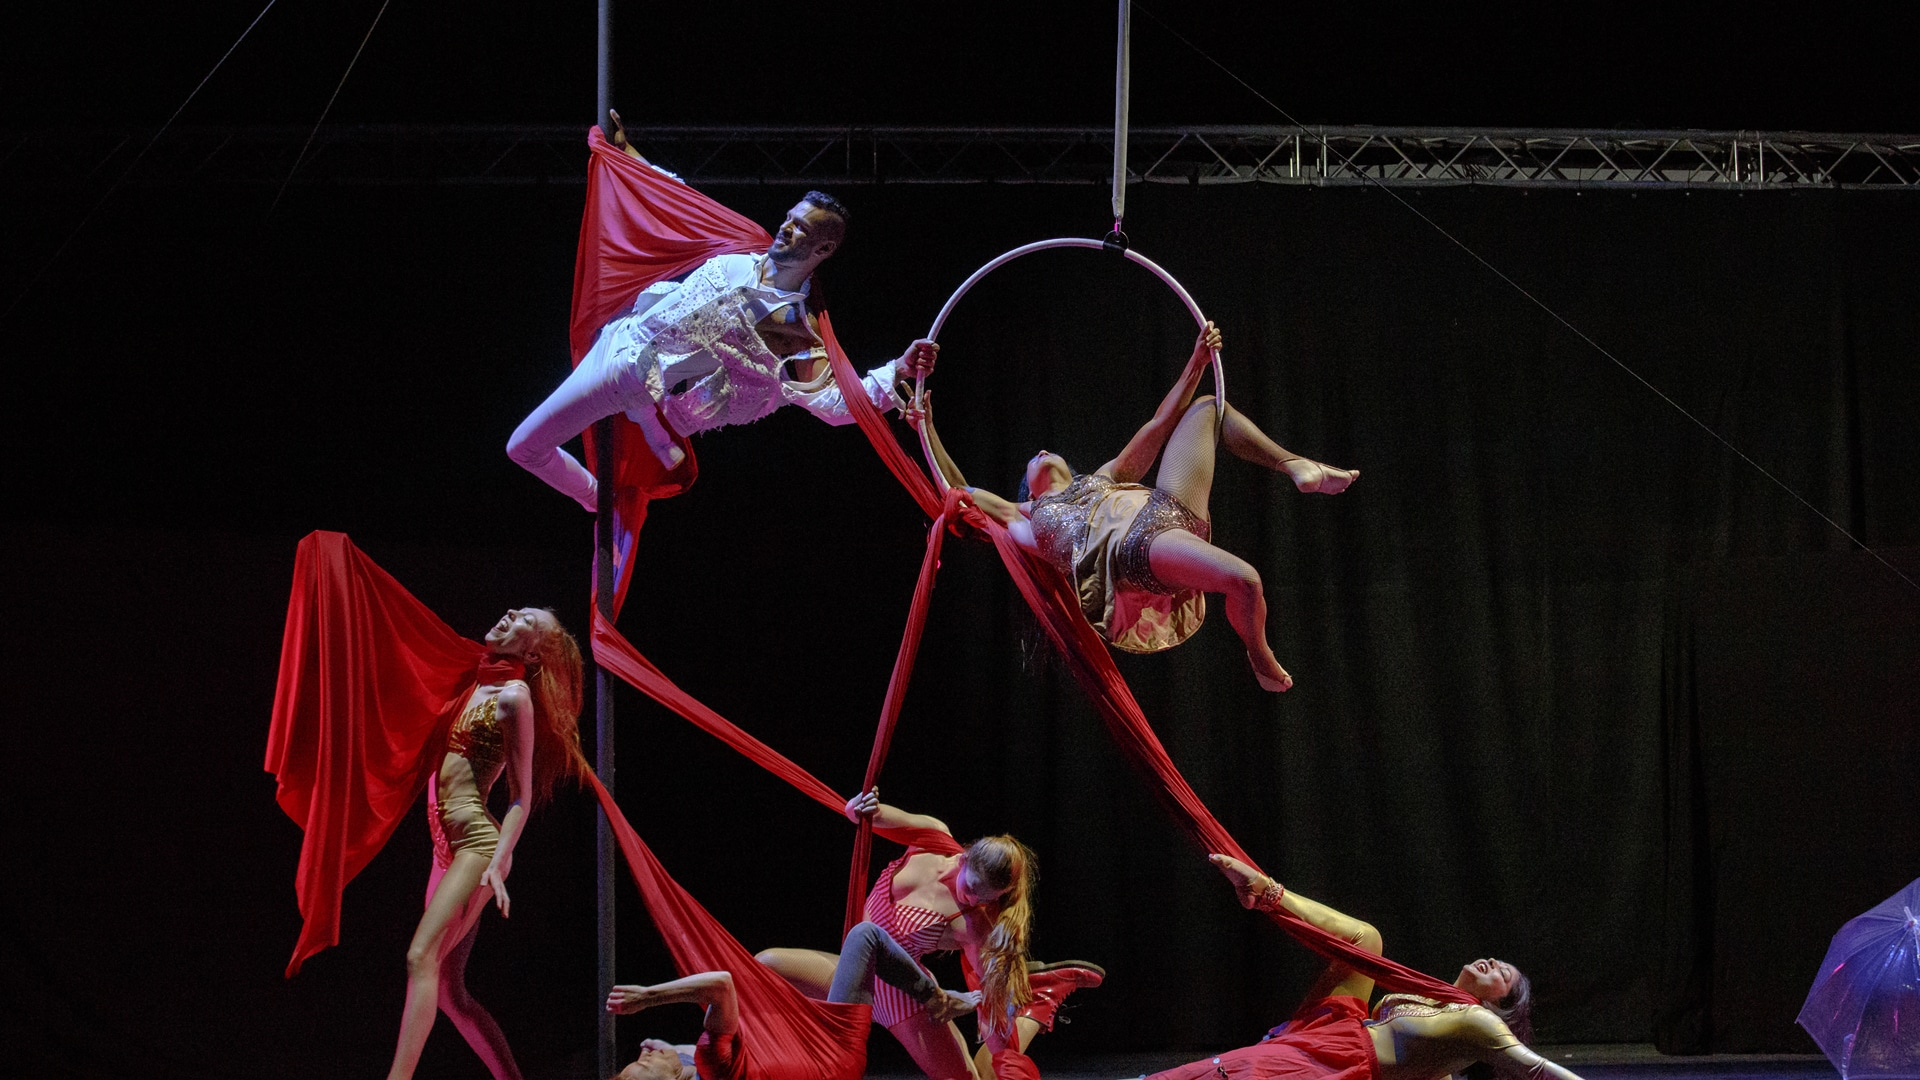 Aerial performers with a long red piece of material connecting them all